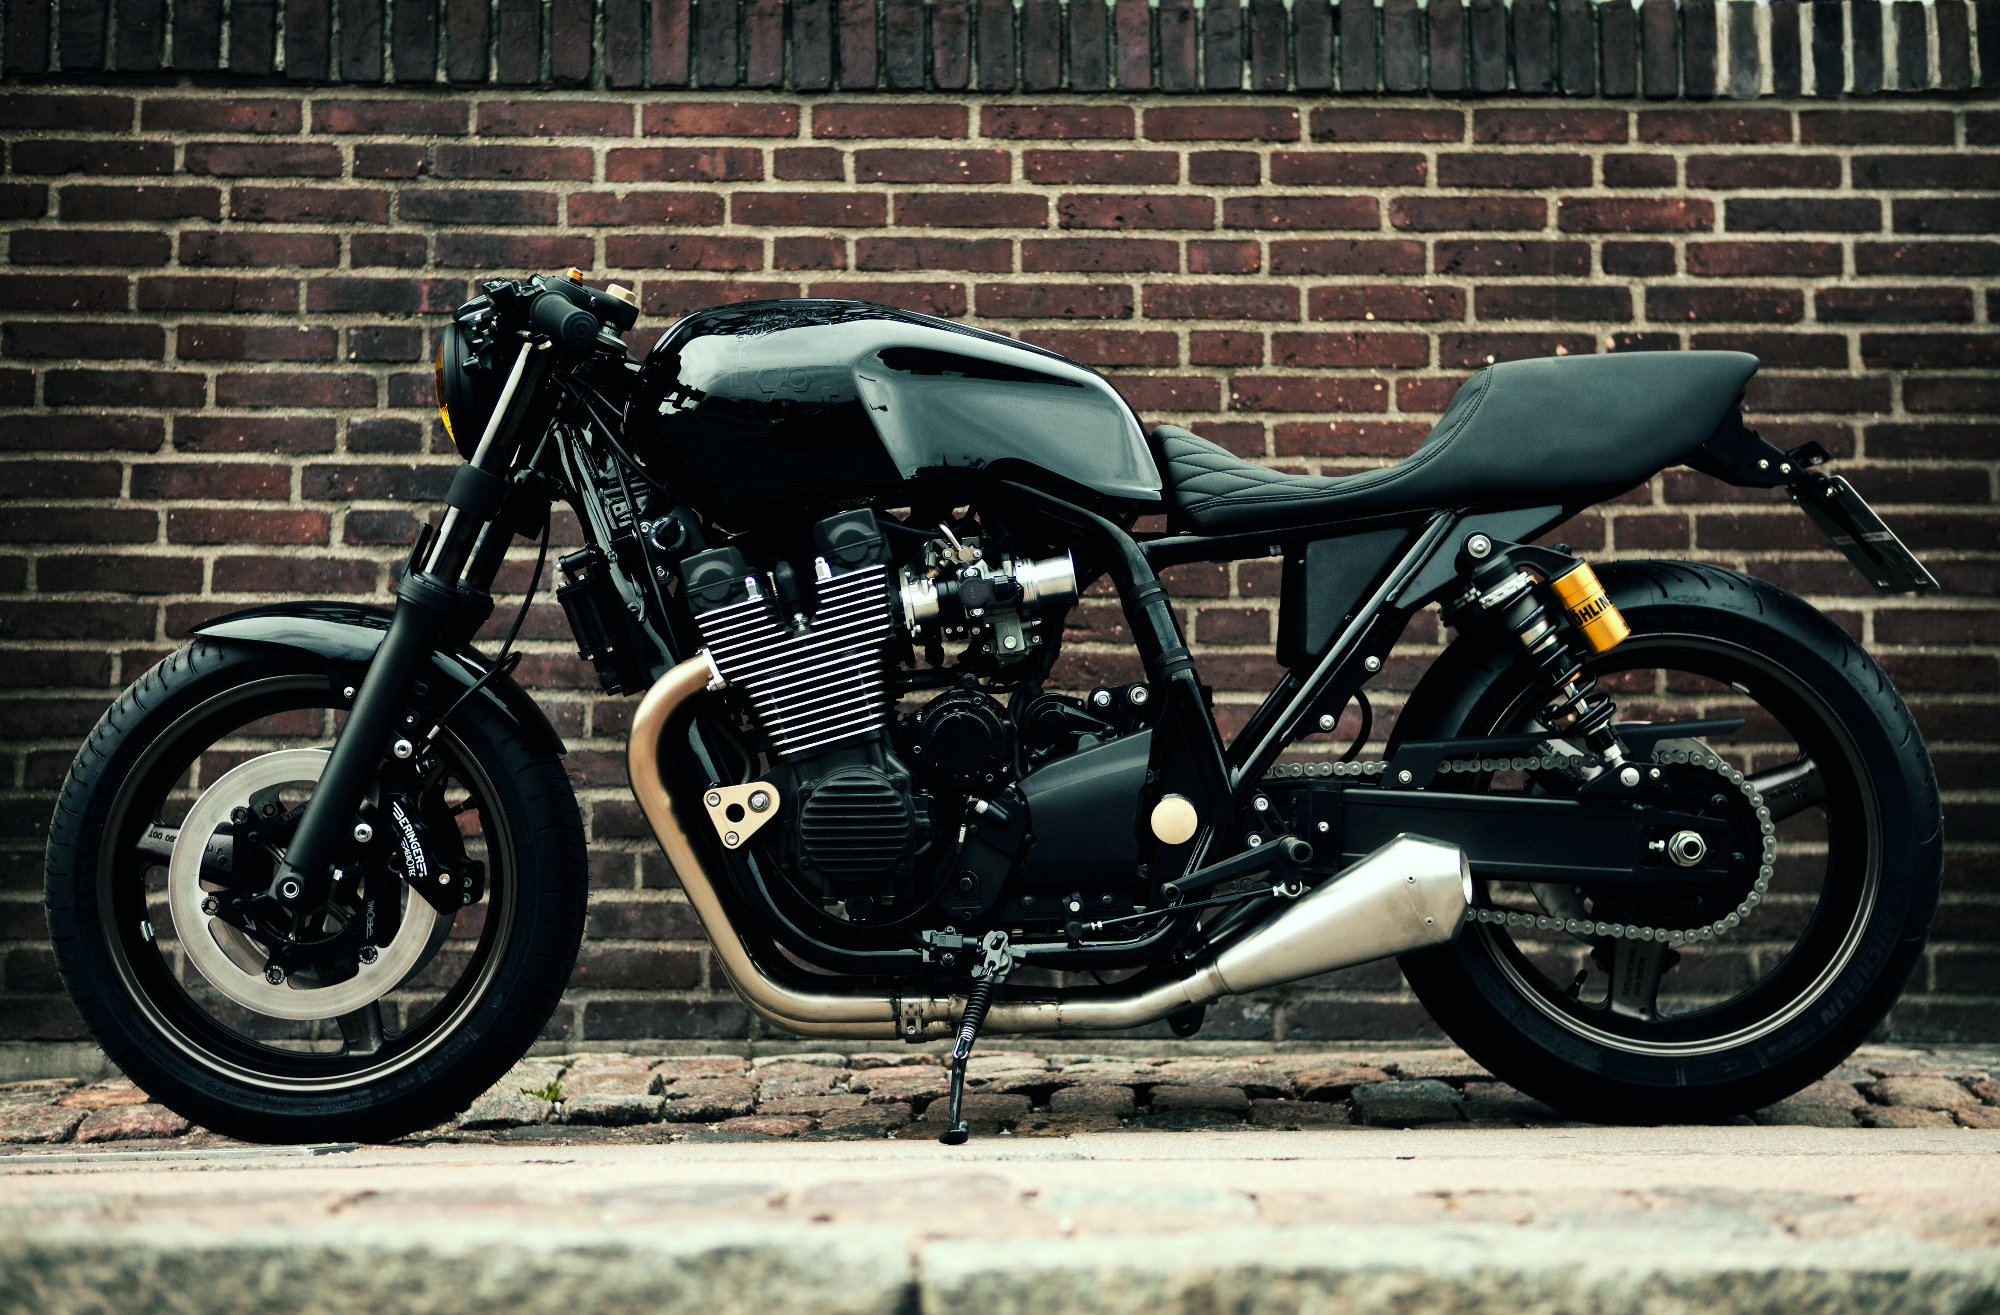 custom yamaha xjr1300 39 skullmonkee 39 rescogs. Black Bedroom Furniture Sets. Home Design Ideas